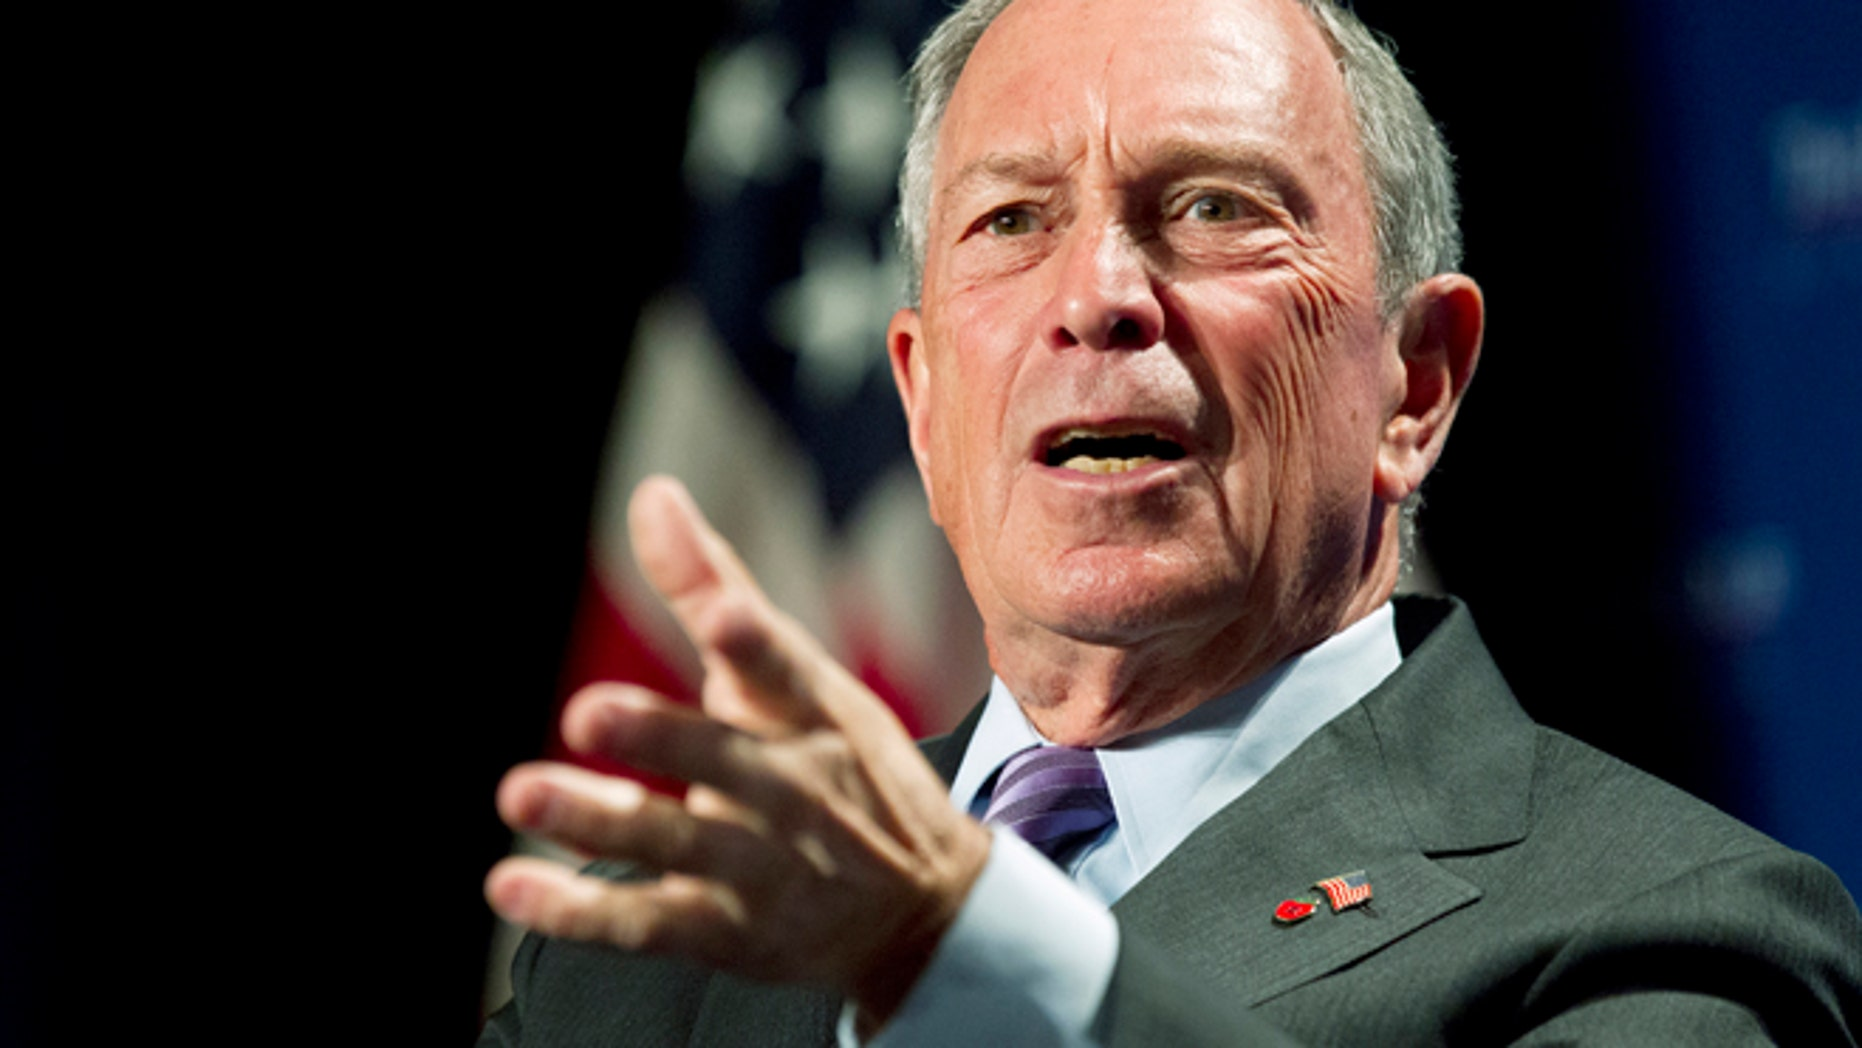 New York City Mayor Michael Bloomberg speaks to the Economic Club of Washington, Wednesday, Sept. 12, 2012, on the four year anniversary of the collapse of the financial industry, and the future of the economic recovery.  (AP Photo/Manuel Balce Ceneta)